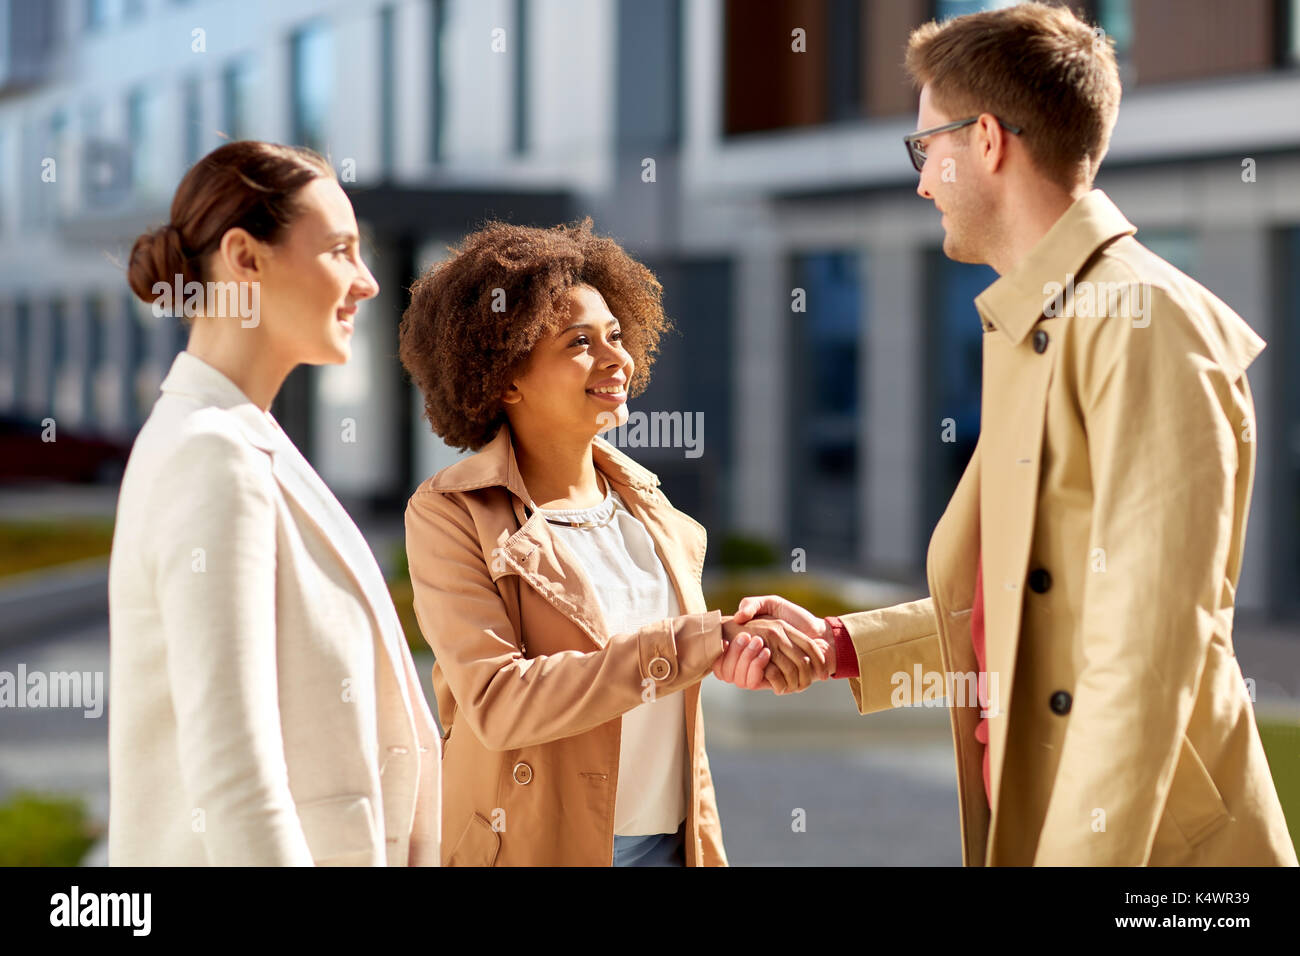 happy people shaking hands on city street - Stock Image